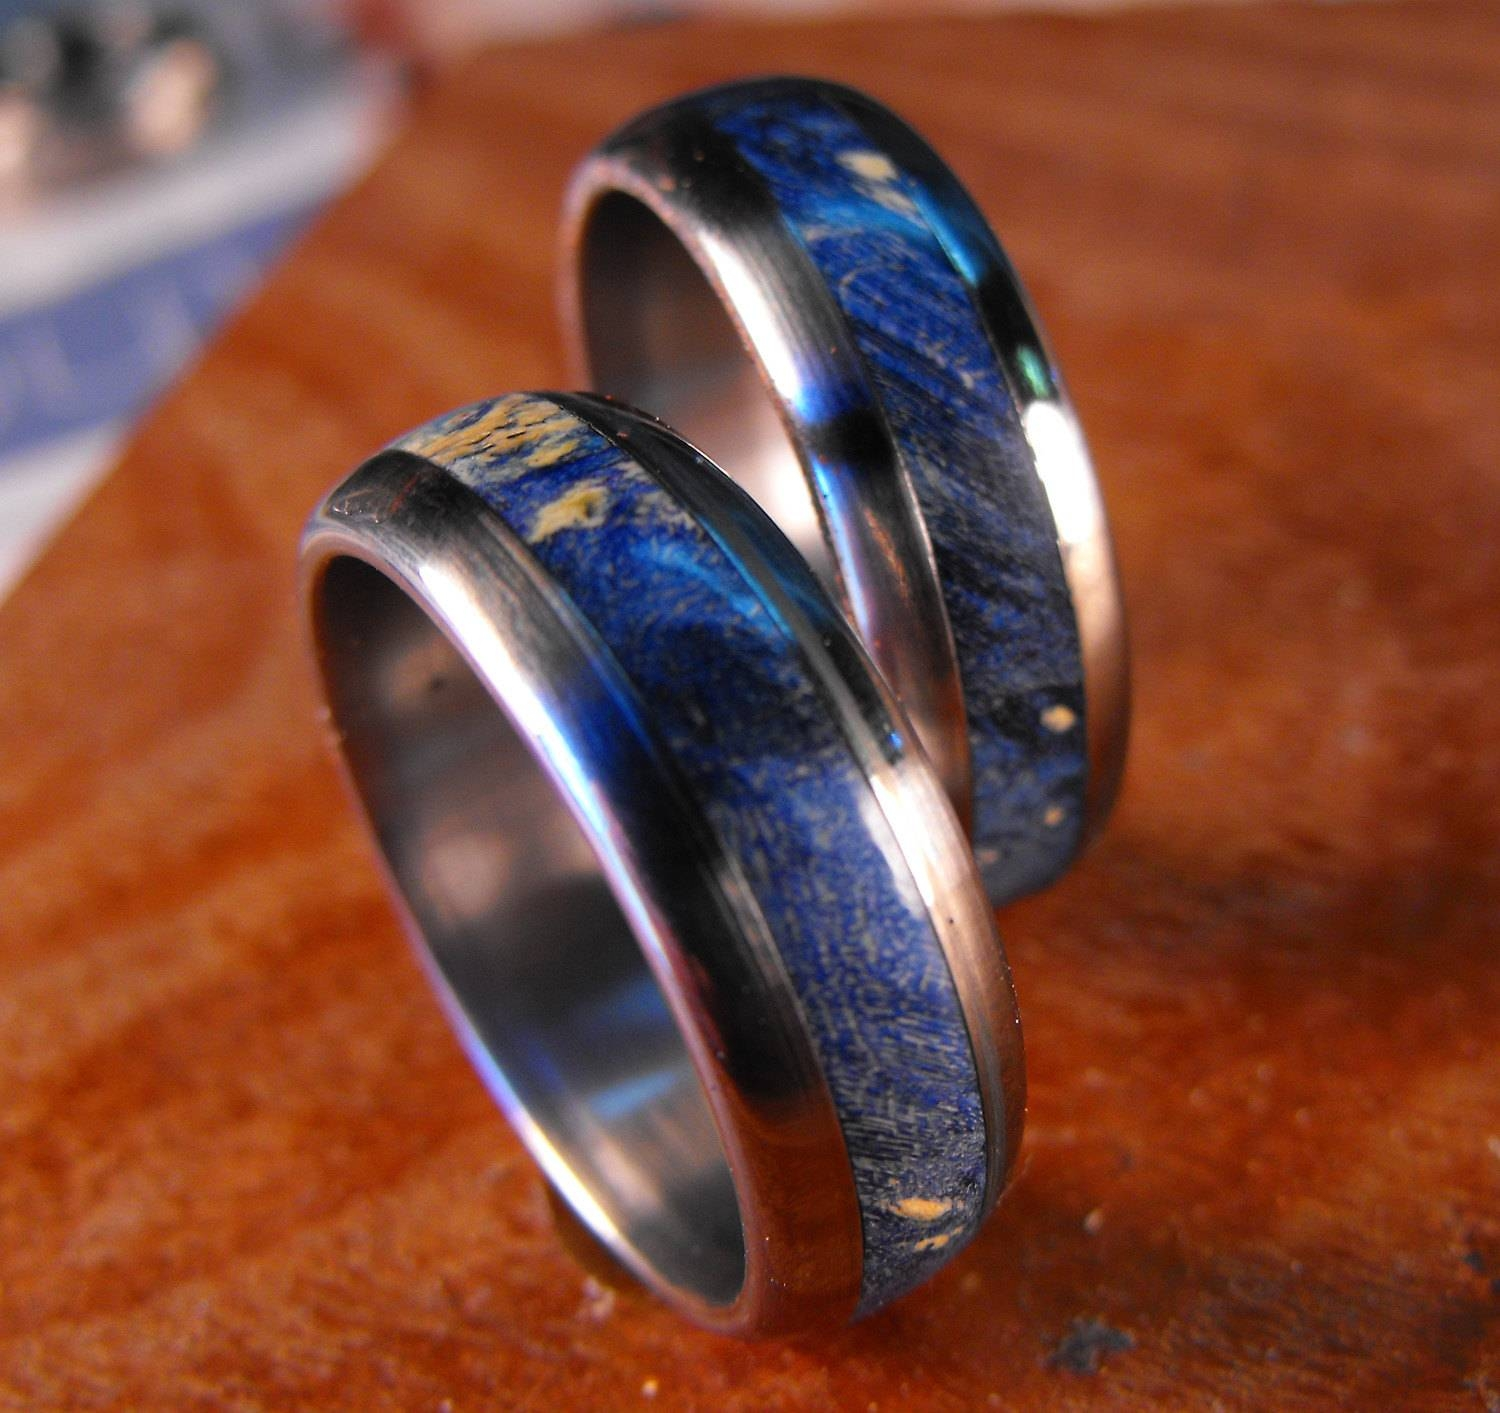 Titanium Rings Wedding Rings Wedding Ring Set His And Hers Intended For Wood Inlay Wedding Bands (View 14 of 15)